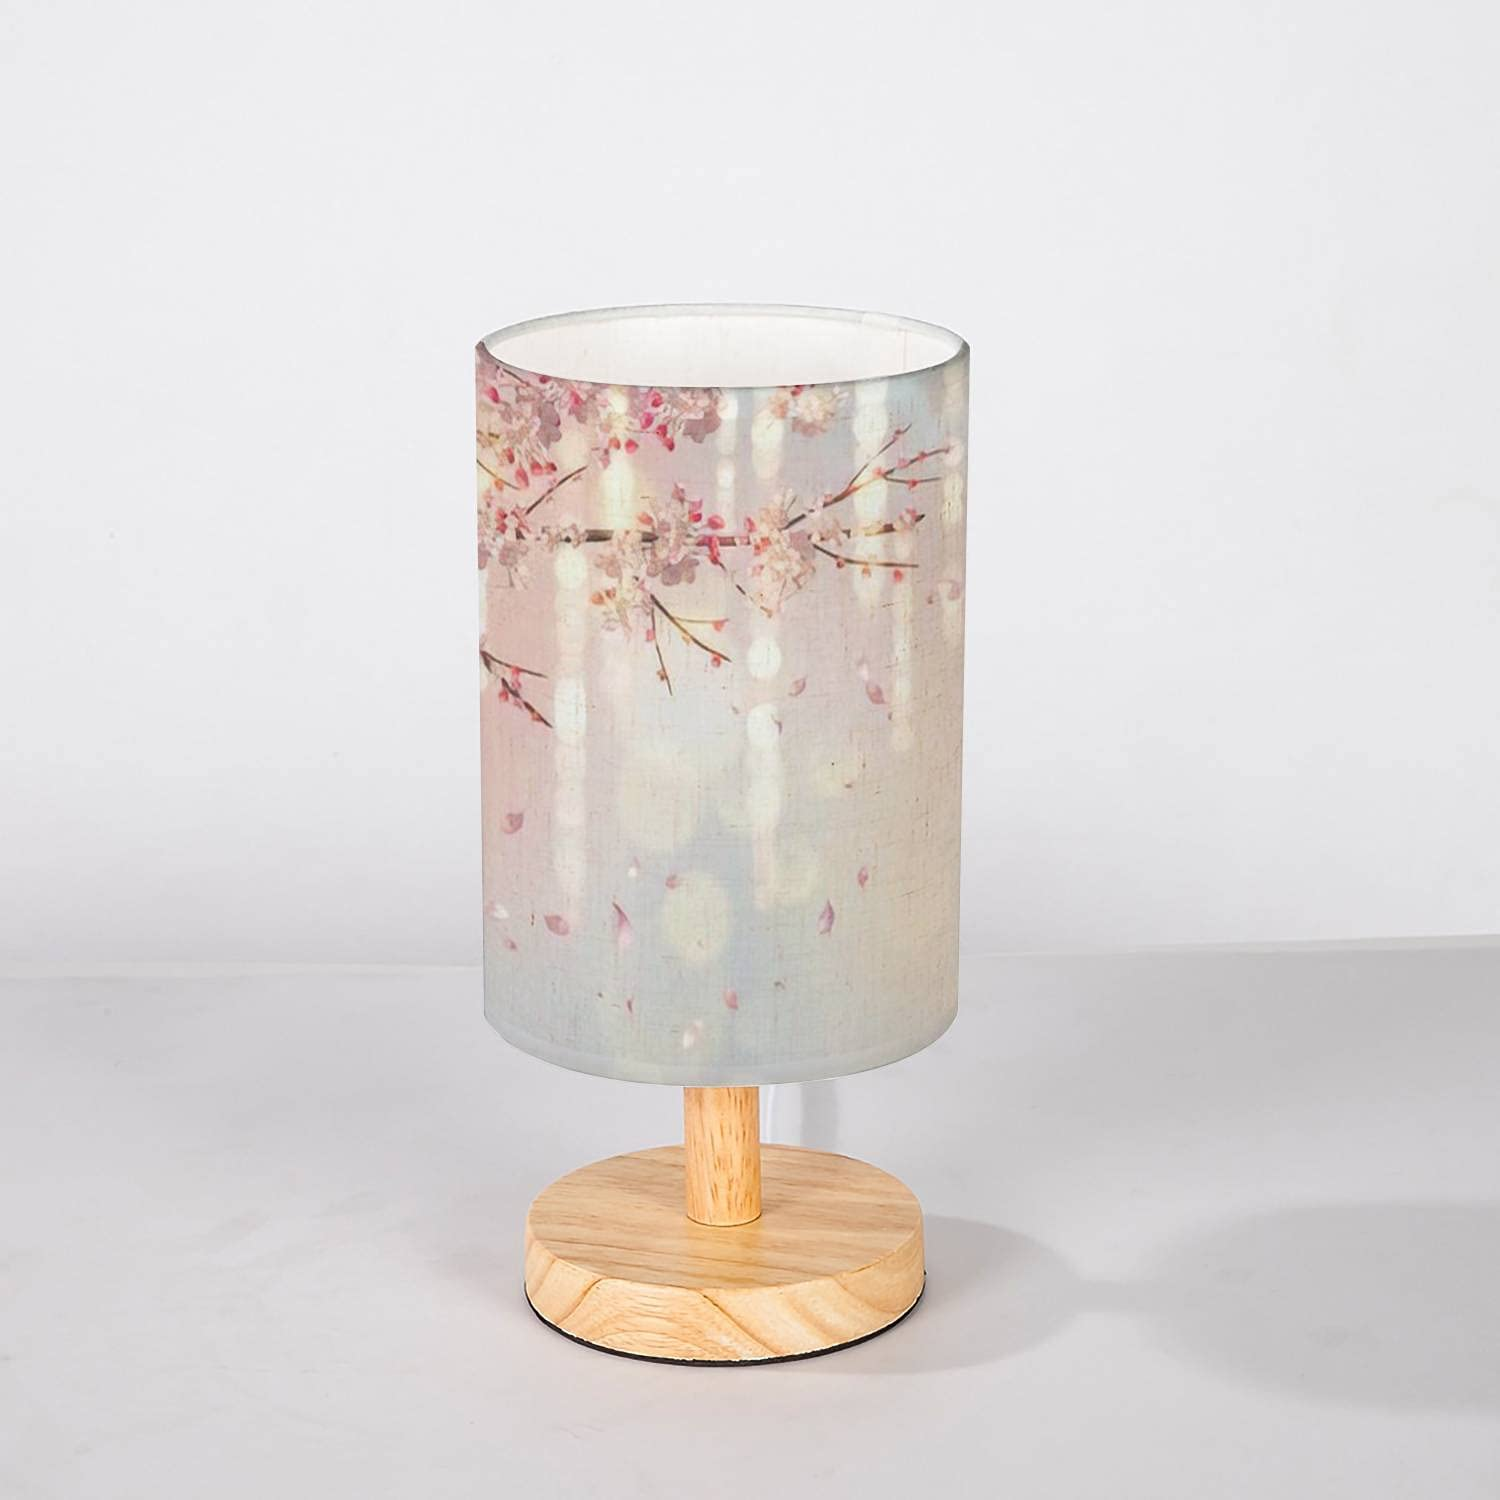 Minimalist Bedside Table Lamp Background or Blo with Plum overseas Dallas Mall Cherry